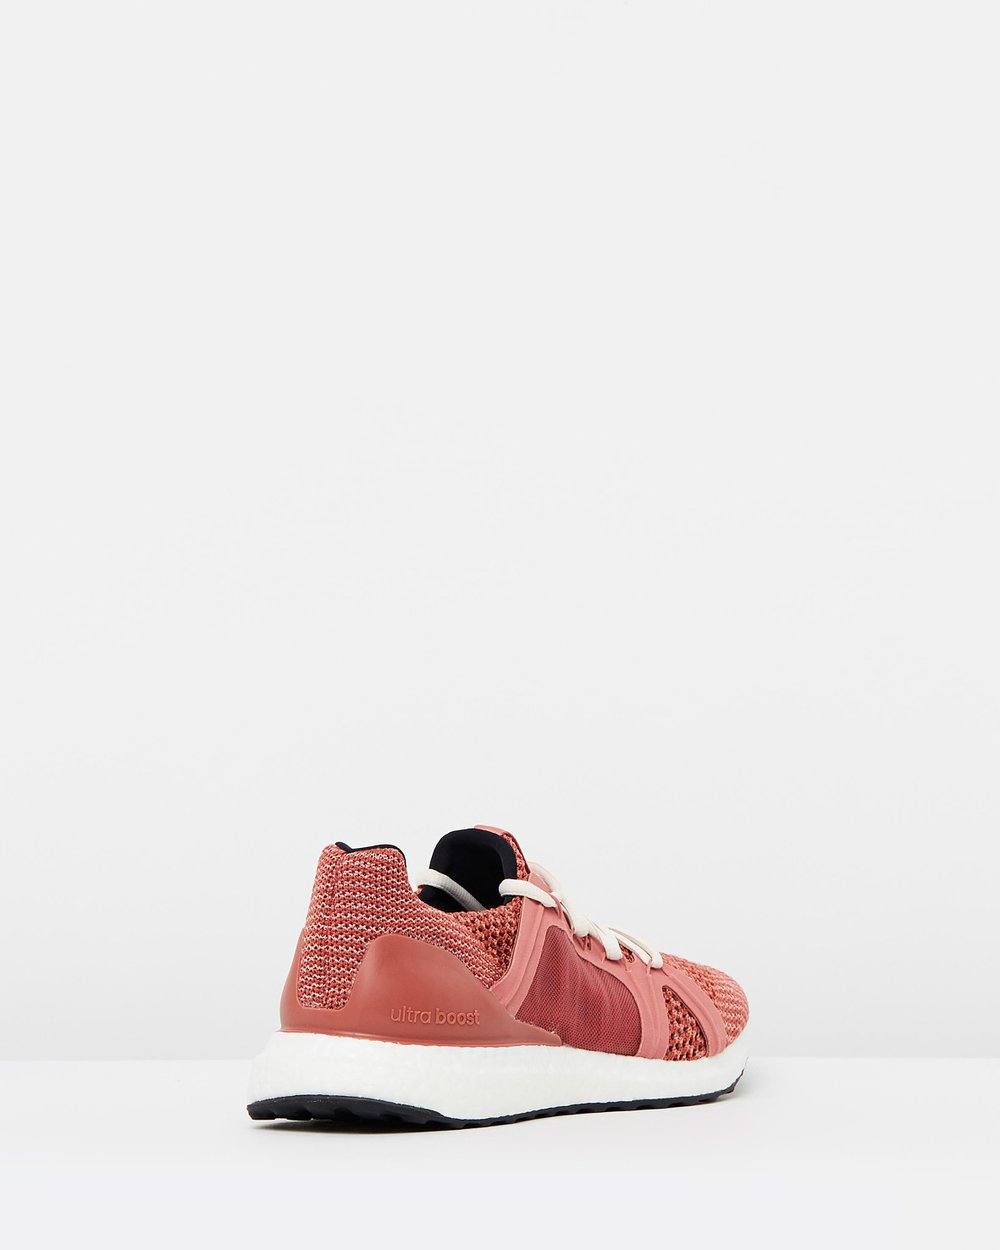 ed212365c Ultraboost - Women s by adidas by Stella McCartney Online